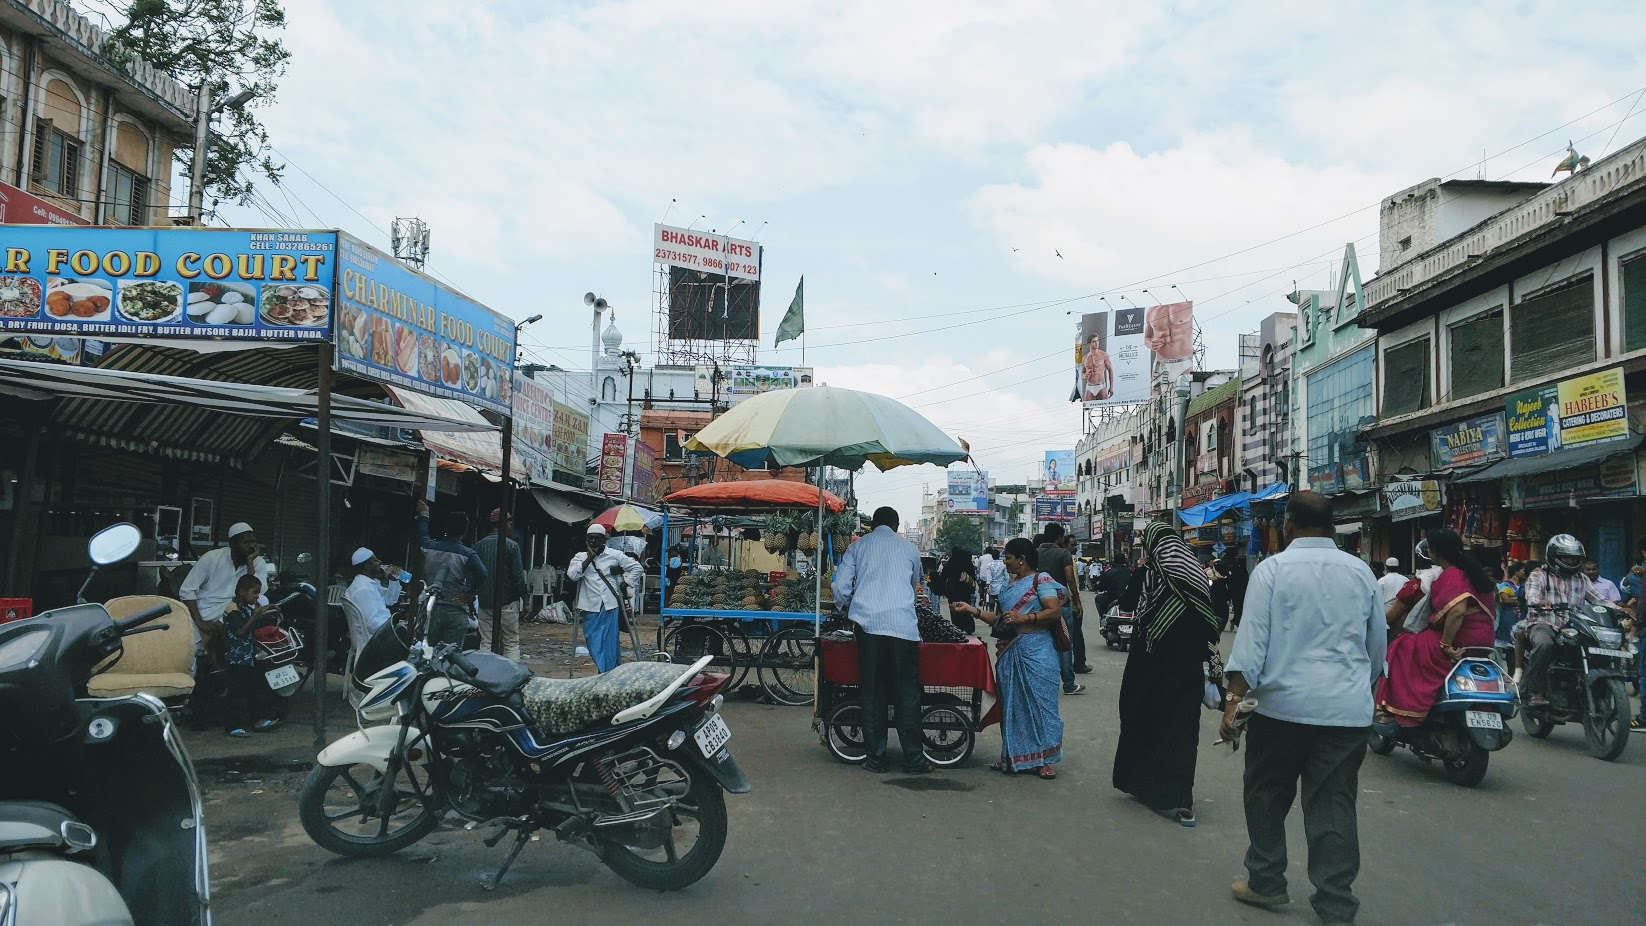 We drive through the chaotic Charminar market in the old Muslim sector of Hyderabad, dodging pedestrians, other cars, scooters, and dogs.